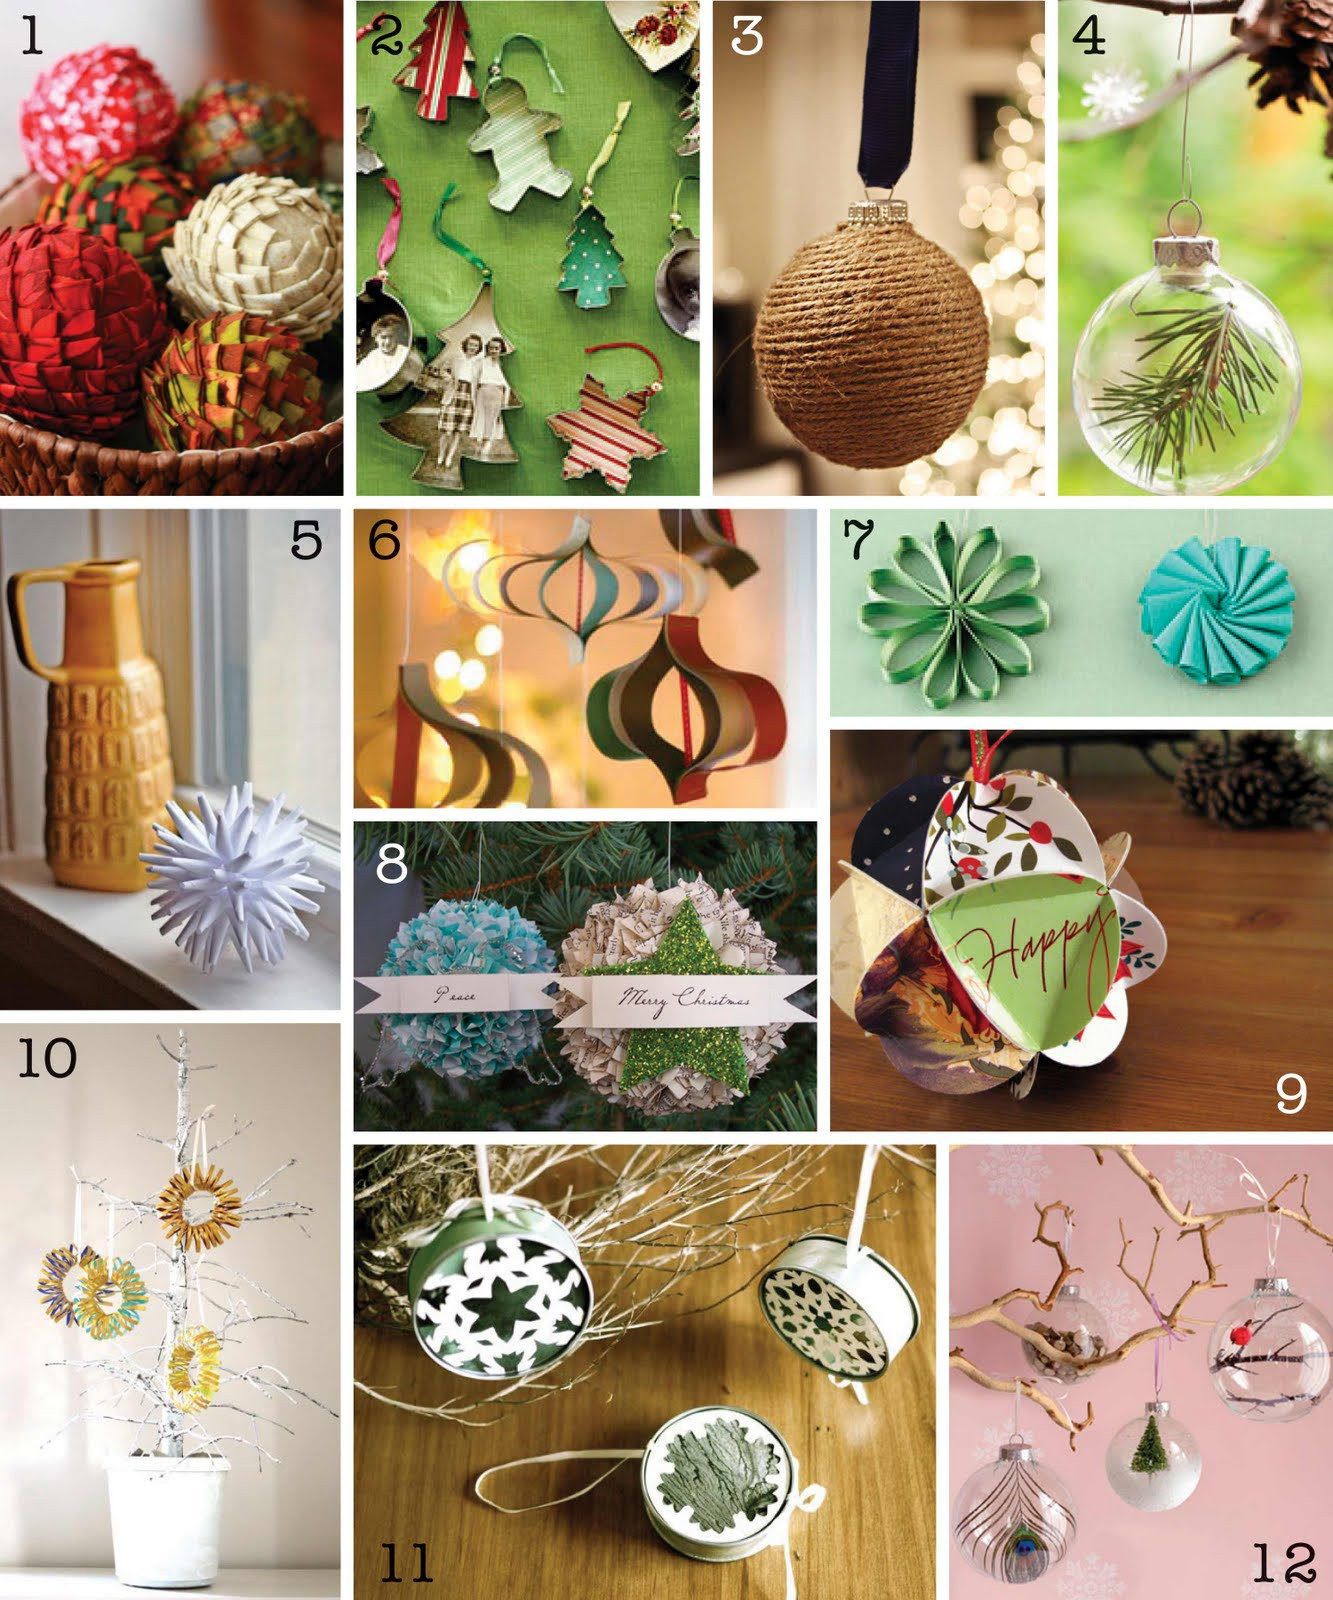 Best ideas about DIY Christmas Ornament . Save or Pin The Creative Place DIY Christmas Ornament Round Up Now.